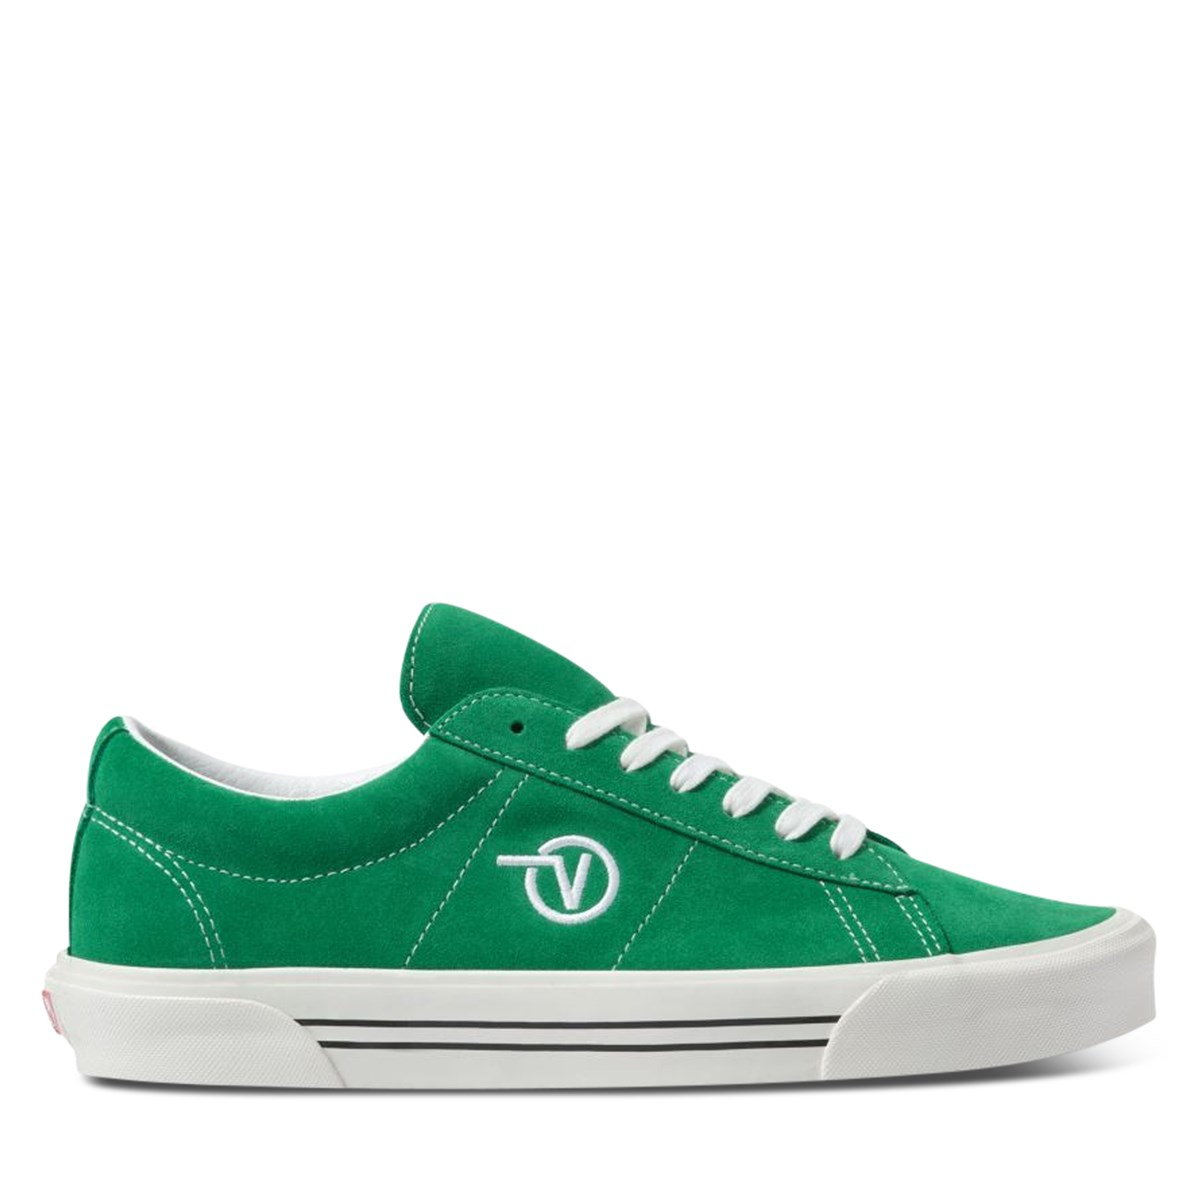 Men's Anaheim Factory Sid DX Sneakers in Green